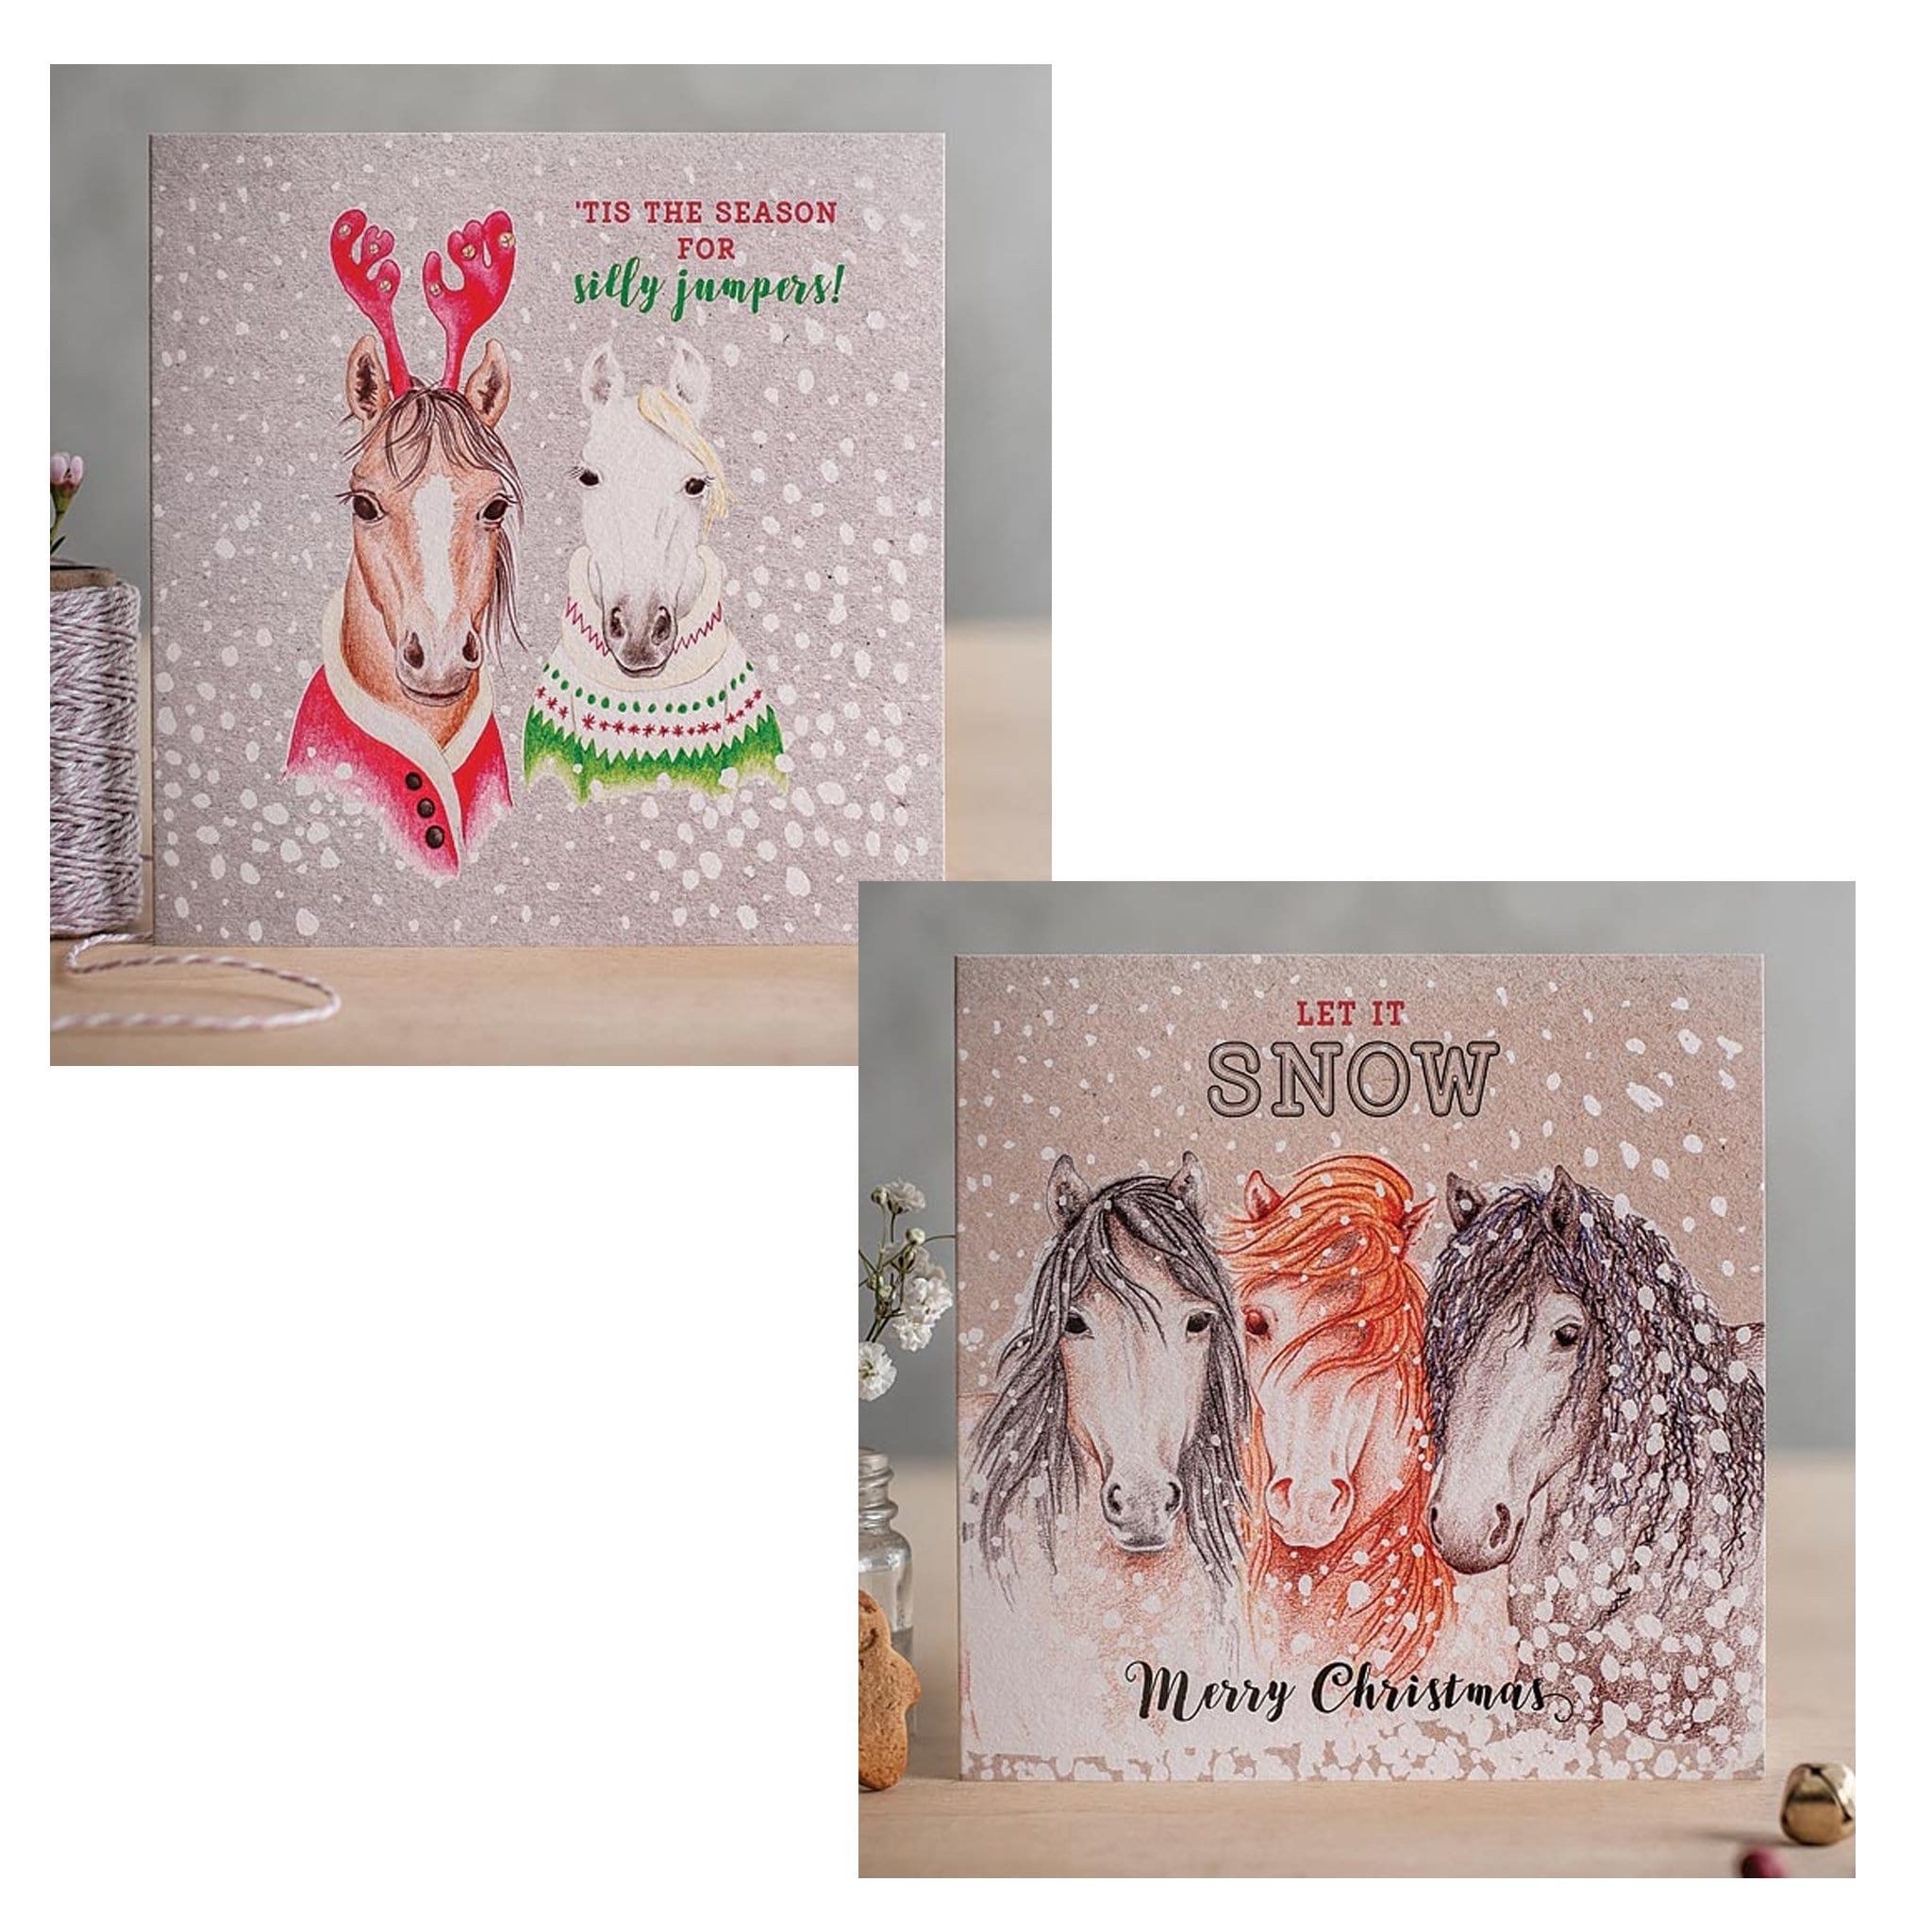 Festive Frolics Christmas Cards With Horses and Ponies